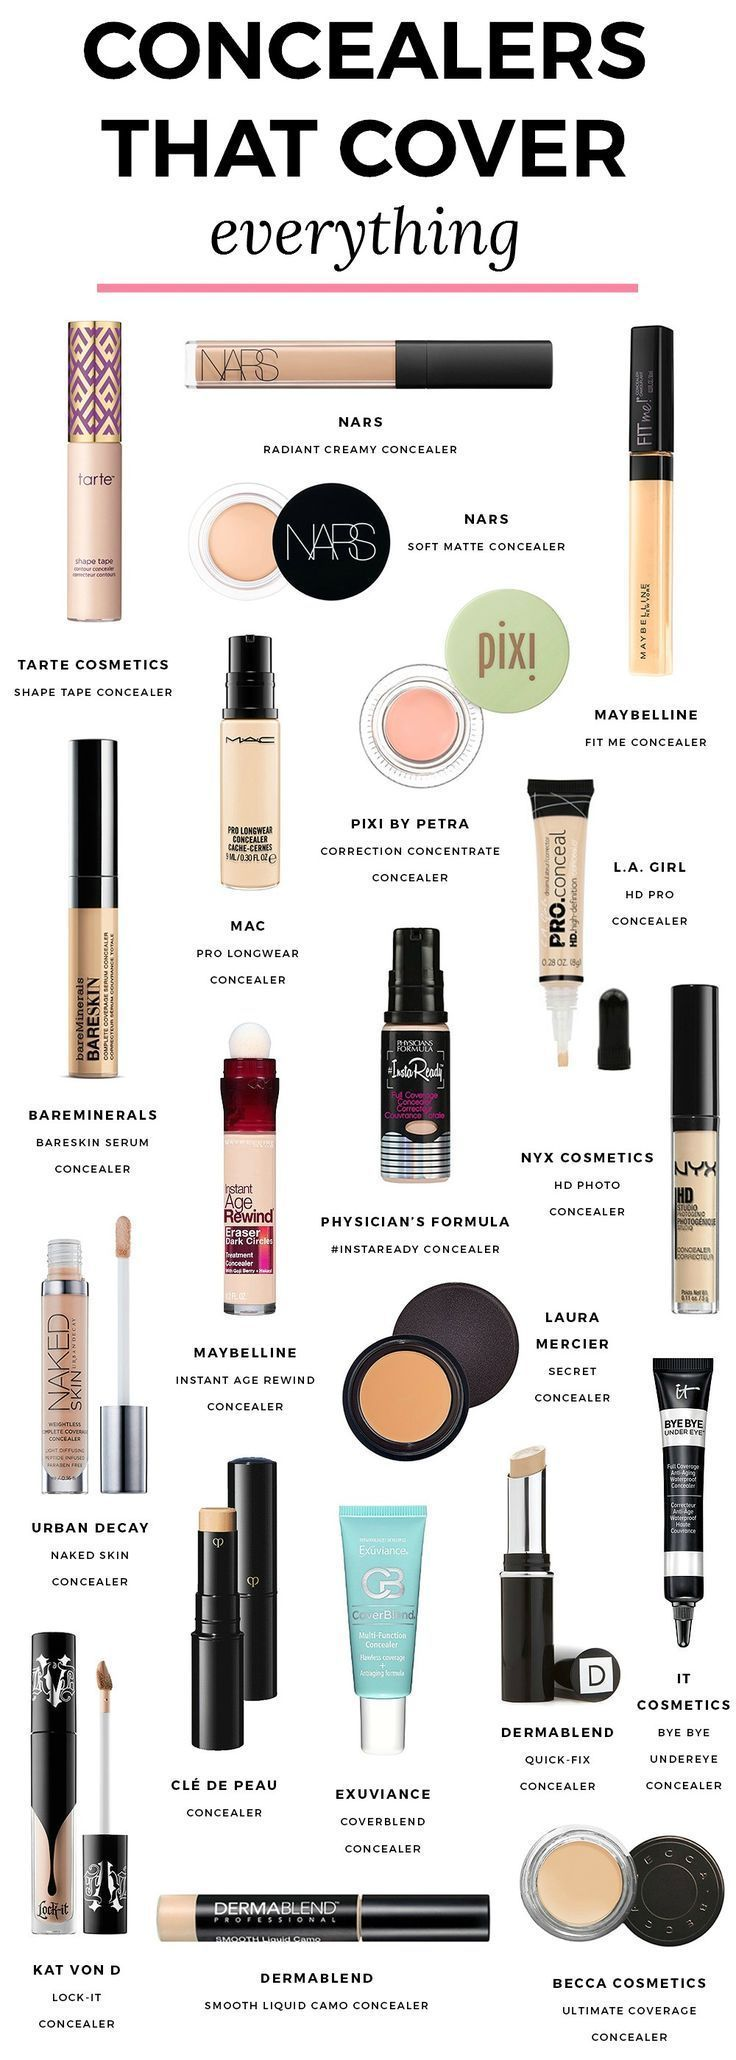 Concealers that cover EVERYTHING. | The best concealers for under eye circles and blemishes in every price range that provide full coverage for dark circles and spots. | Best concealers, best makeup, ride or die makeup, favorite makeup, favorite concealers, concealer for dark circles, beauty secrets, beauty tips, makeup artist favorite concealers, Tarte Shape Tape, NARS Radiant Concealer, Maybelline Fit Me, color correcting concealer, Florida beauty blogger Ashley Brooke Nicholas